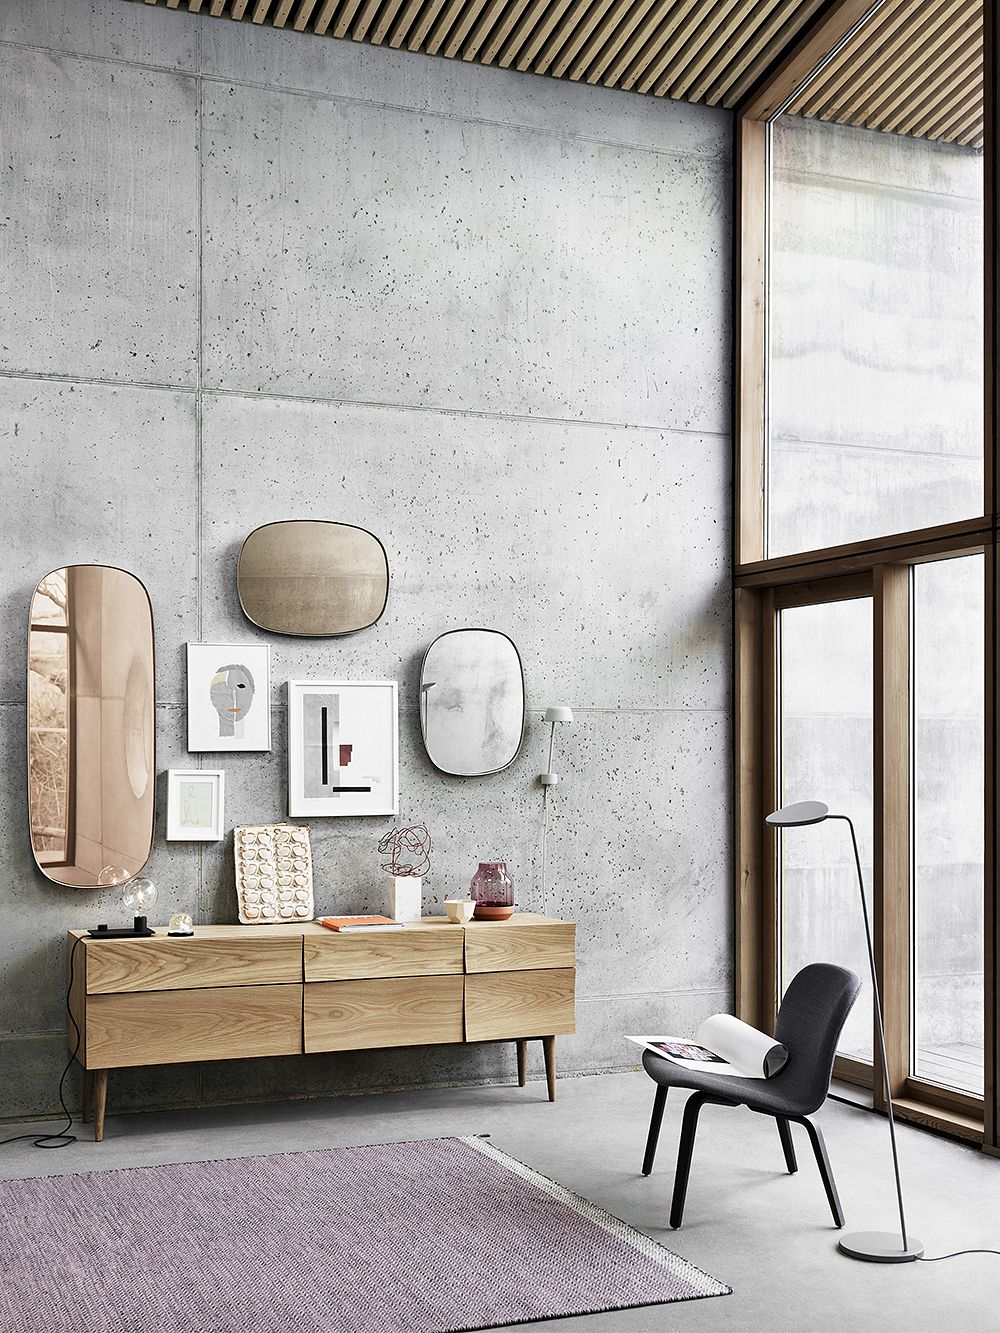 Muuto's Reflect sideboard as a part of the living room decor.